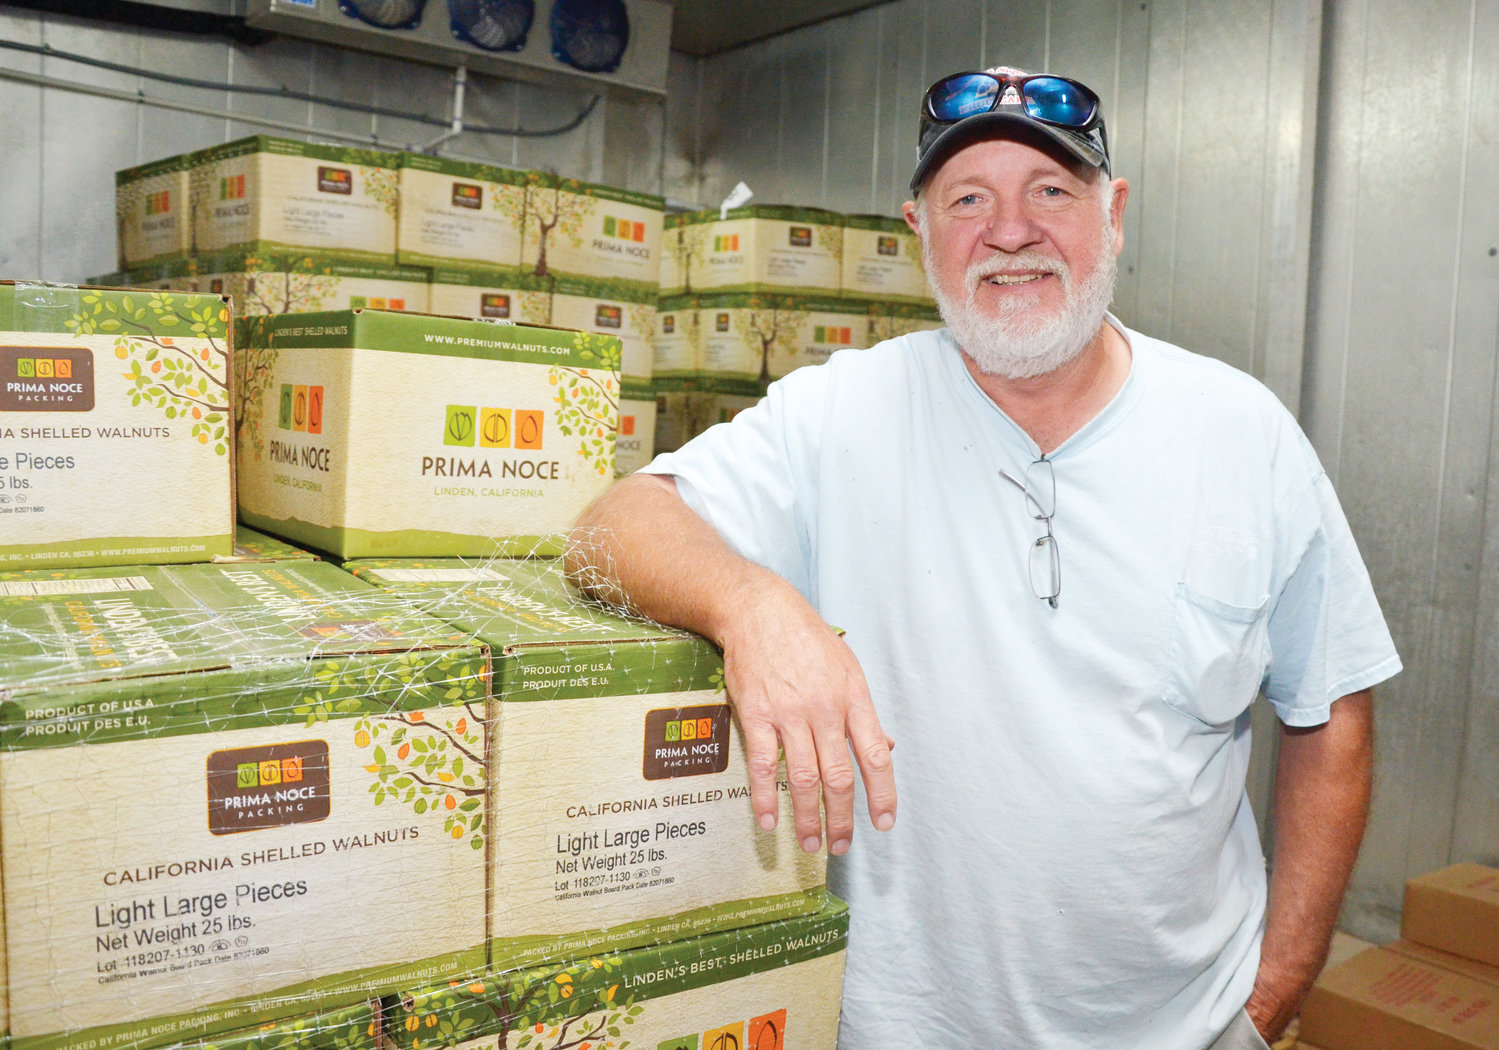 In the freezer room, Randy Scott, co-owner of Southern Supreme Fruitcake, has a large supply of nuts ready for their nutty-style fruitcake. The company has been in business since the mid-1980's, when Berta Lou made cakes in the kitchen oven.